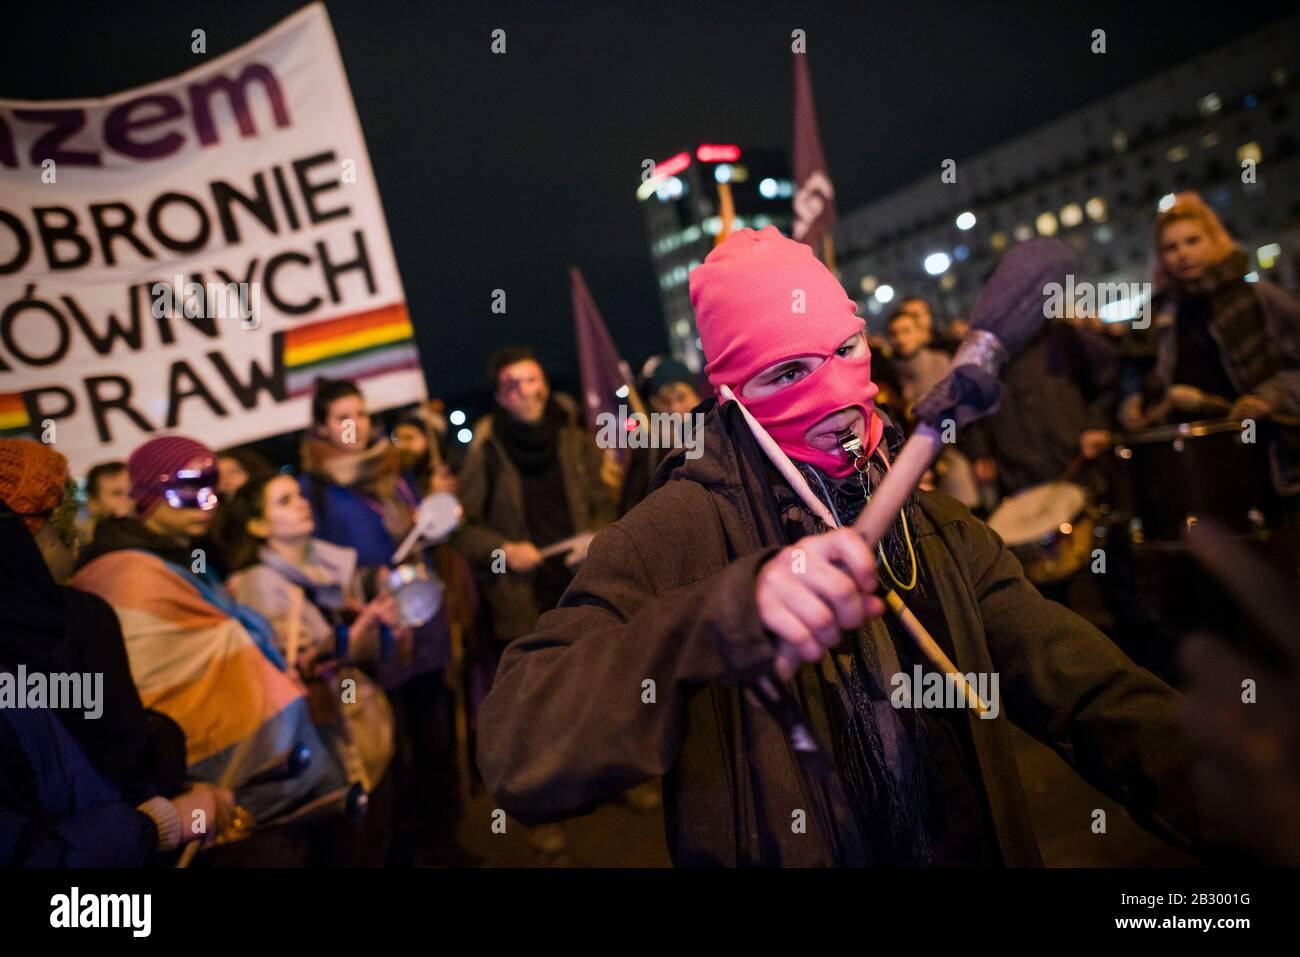 """A masked activist whistling while playing drums during the protest.Dozens of LGBTQ activists and citizens protested in Warsaw against the LGBT - free zones resolutions. A third of Poland has officially declared itself an """"LGBT-free"""" zone as local governments adopt resolutions against """"LGBT propaganda."""" Nearly 100 Polish municipal or local governments across an area larger than the size of Hungary have now proclaimed themselves to be """"free from LGBT ideology,"""" and have adopted resolutions that officially enable intolerance and discrimination against LGBTQ people. Stock Photo"""